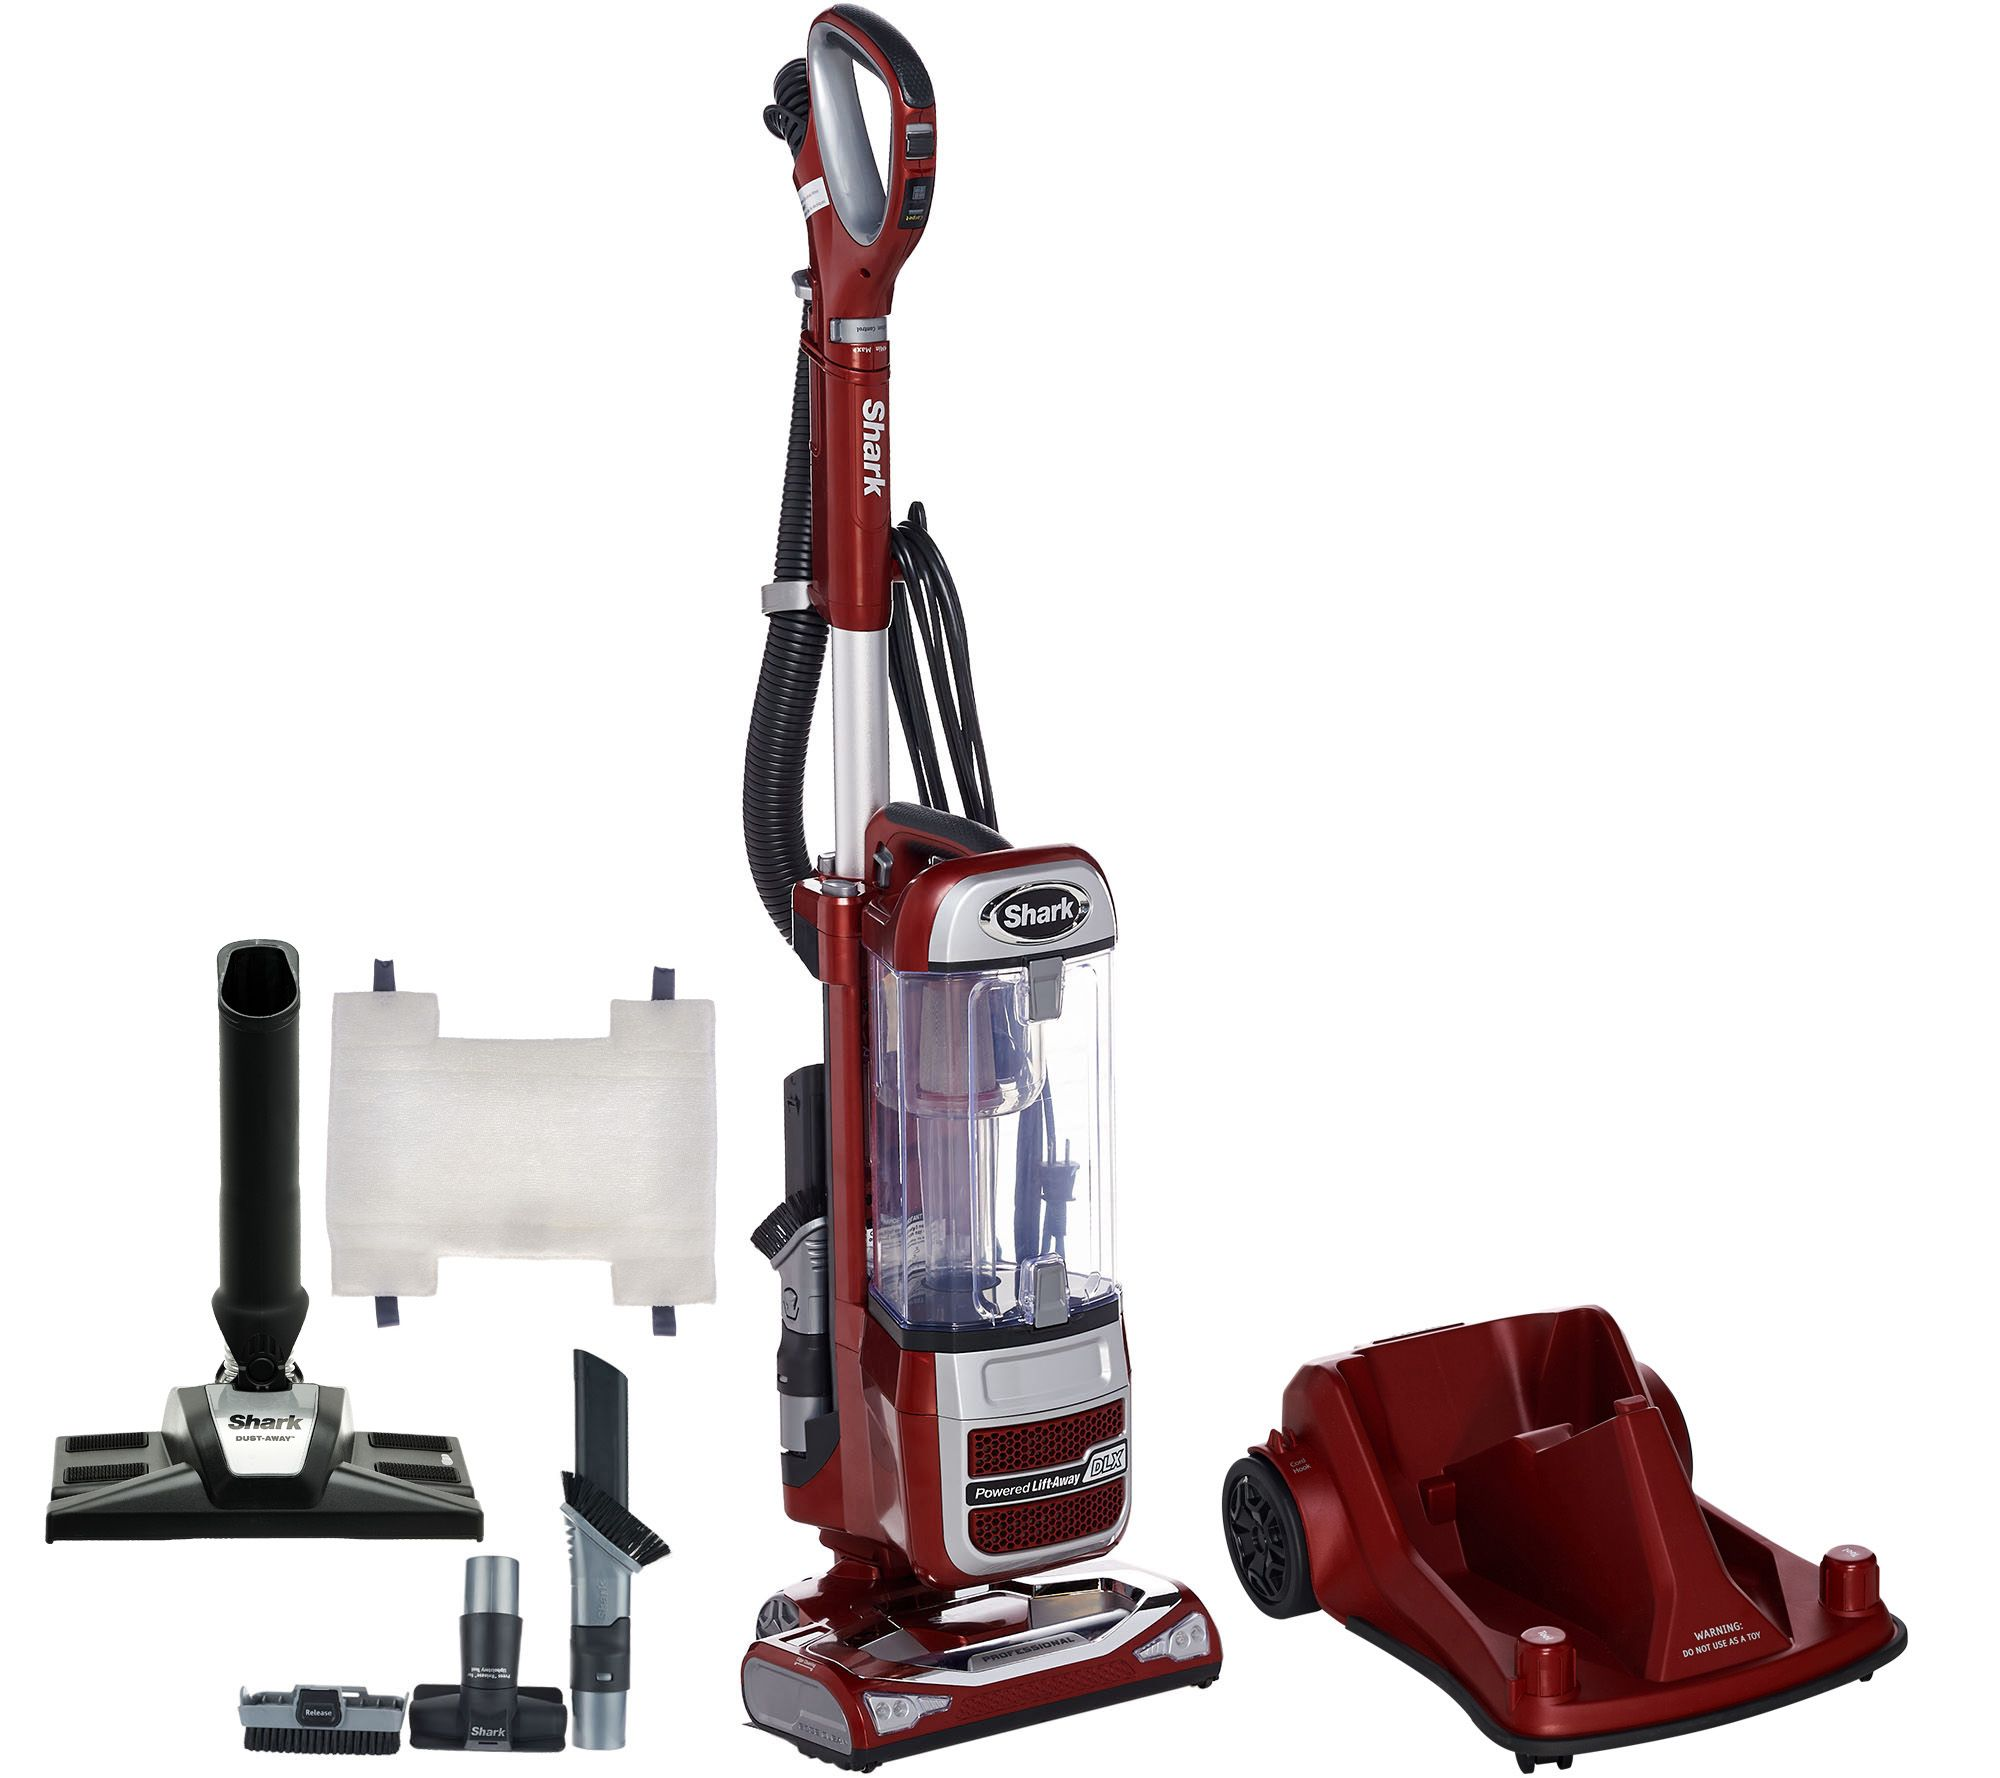 shark navigator powered liftaway dlx 3in1 vacuum wtools u0026 caddy page 1 u2014 qvccom - Shark Vacuum Cleaner